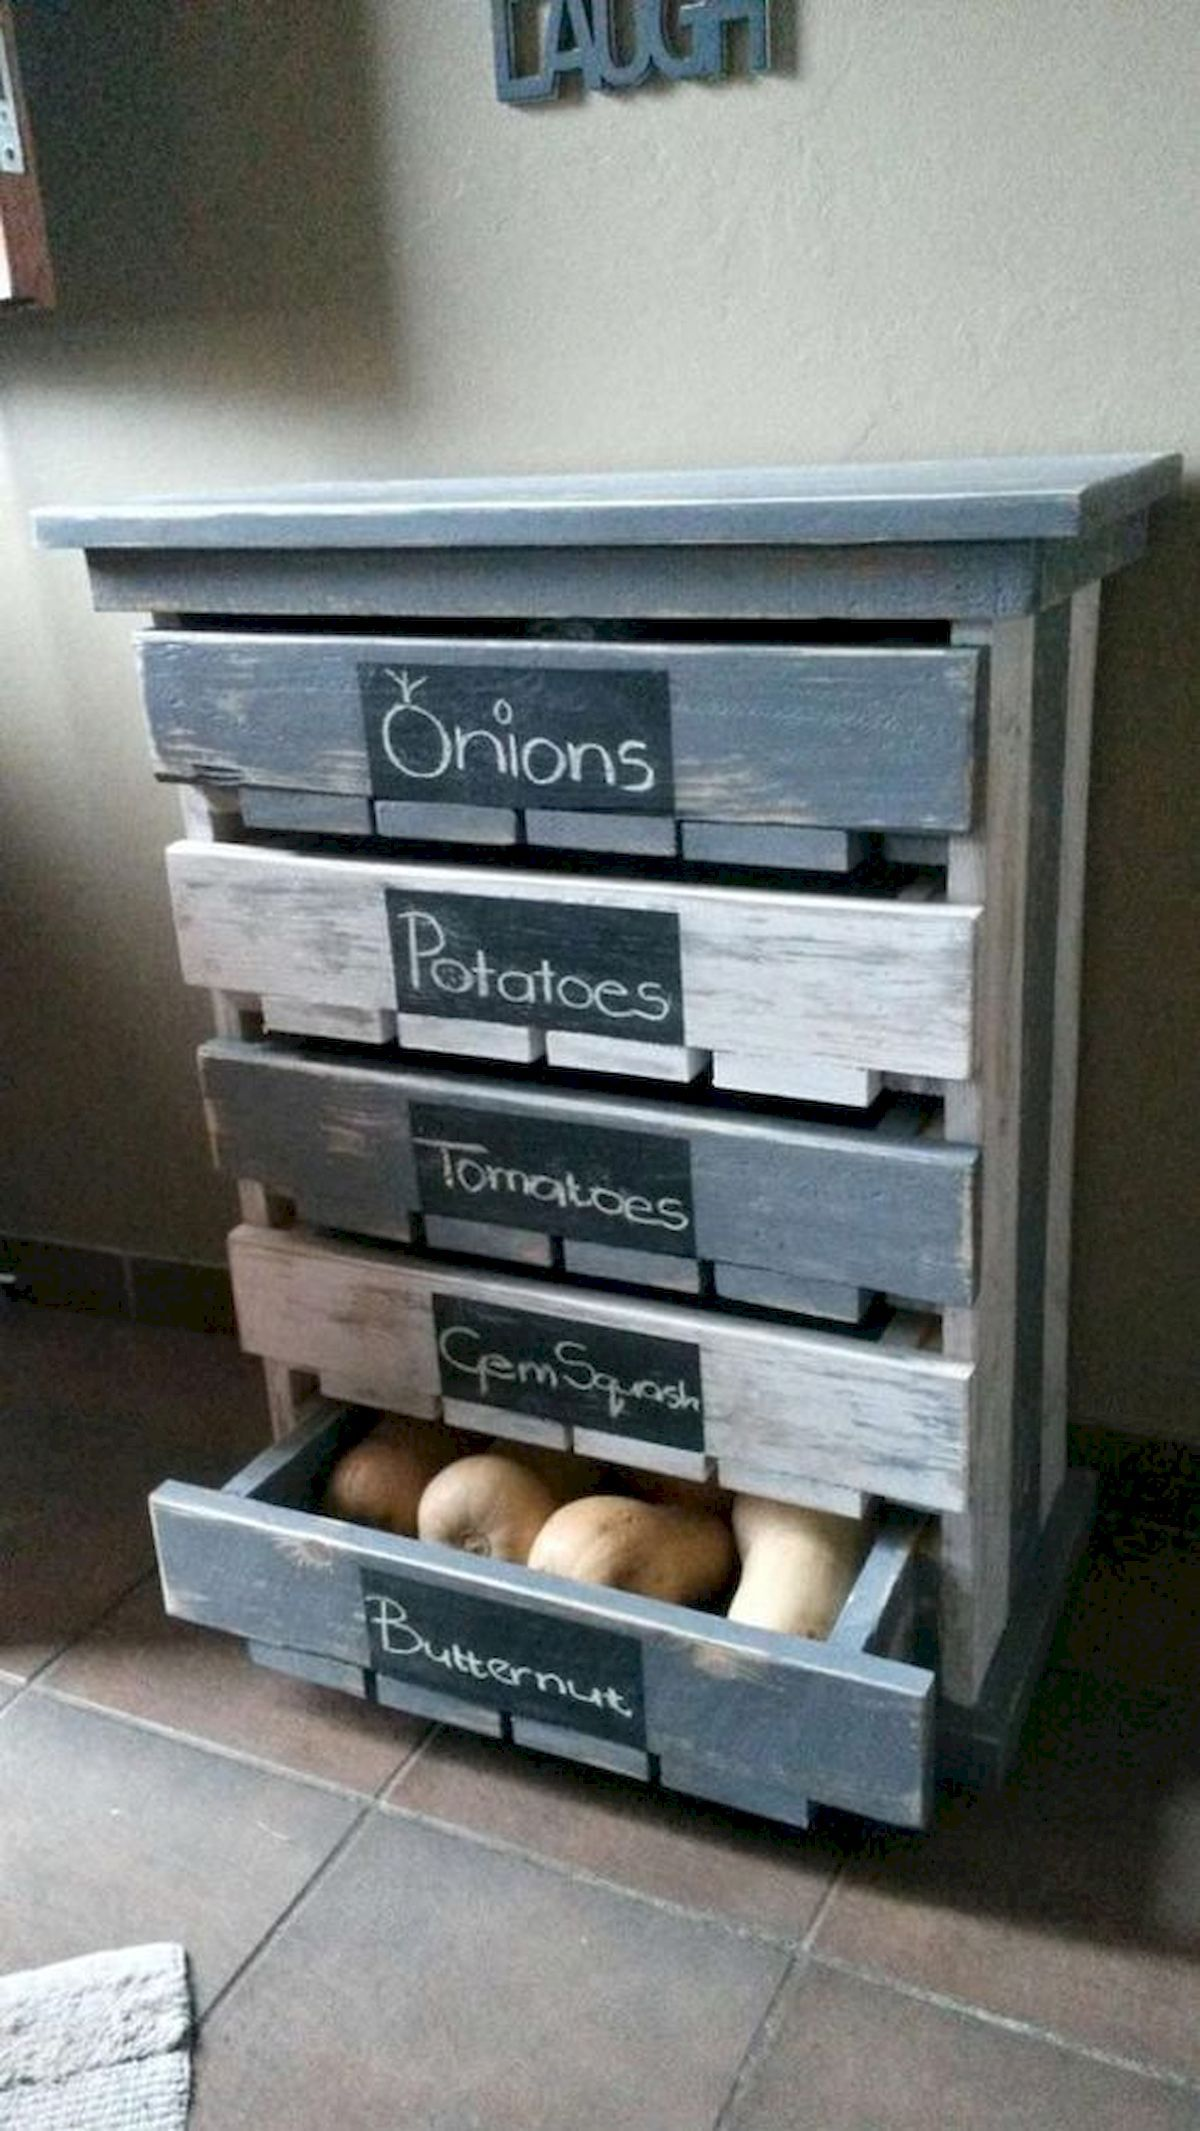 80 Awesome DIY Projects Pallet Shelves and Racks Design Ideas #palletideas